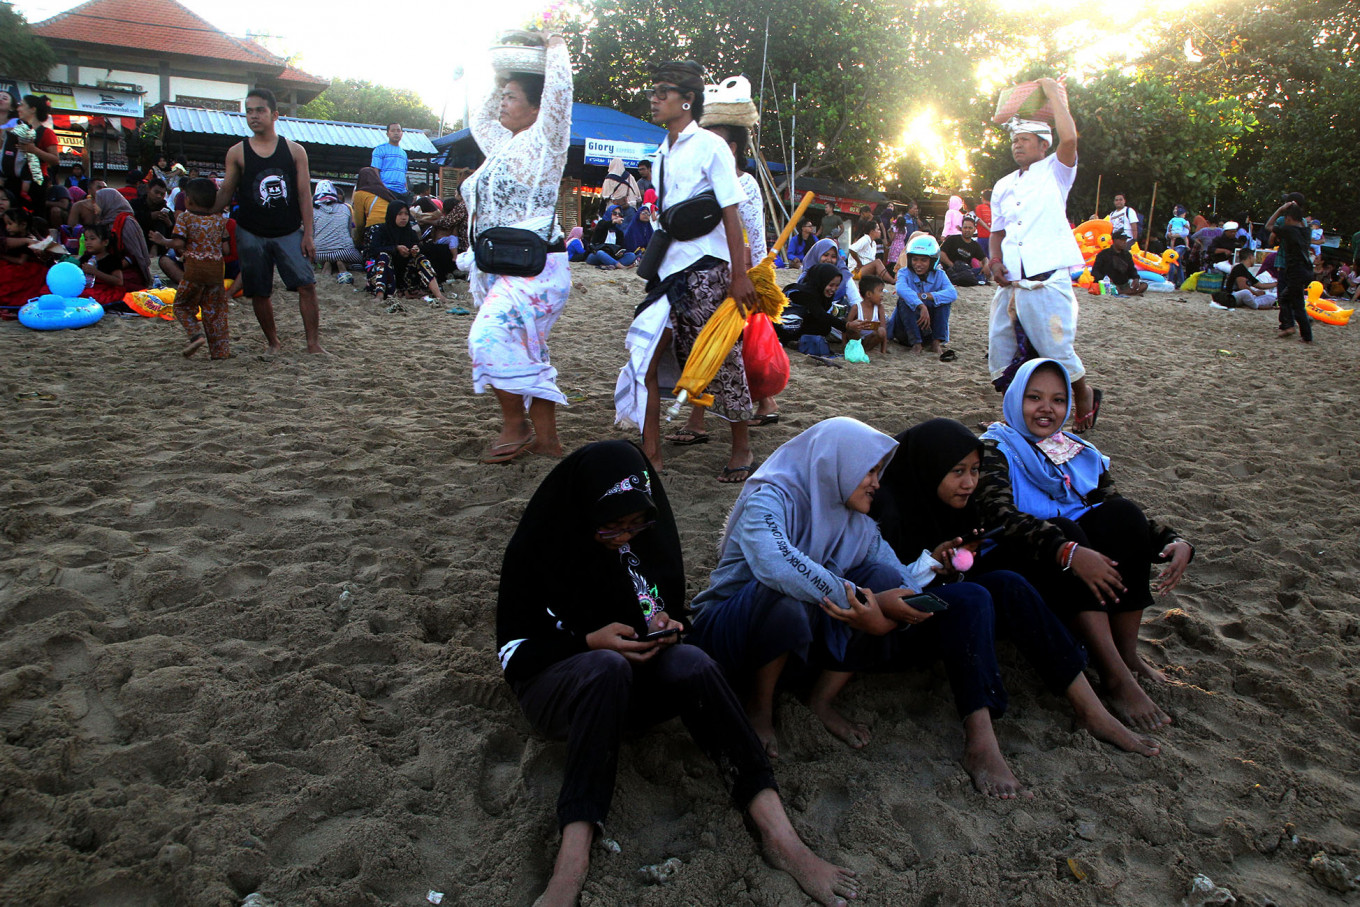 Harmonious: Balinese Hindu adherents clad in white walk by Muslims celebrating tradition on Sanur Beach in Bali. JP/ Zul Trio Anggono